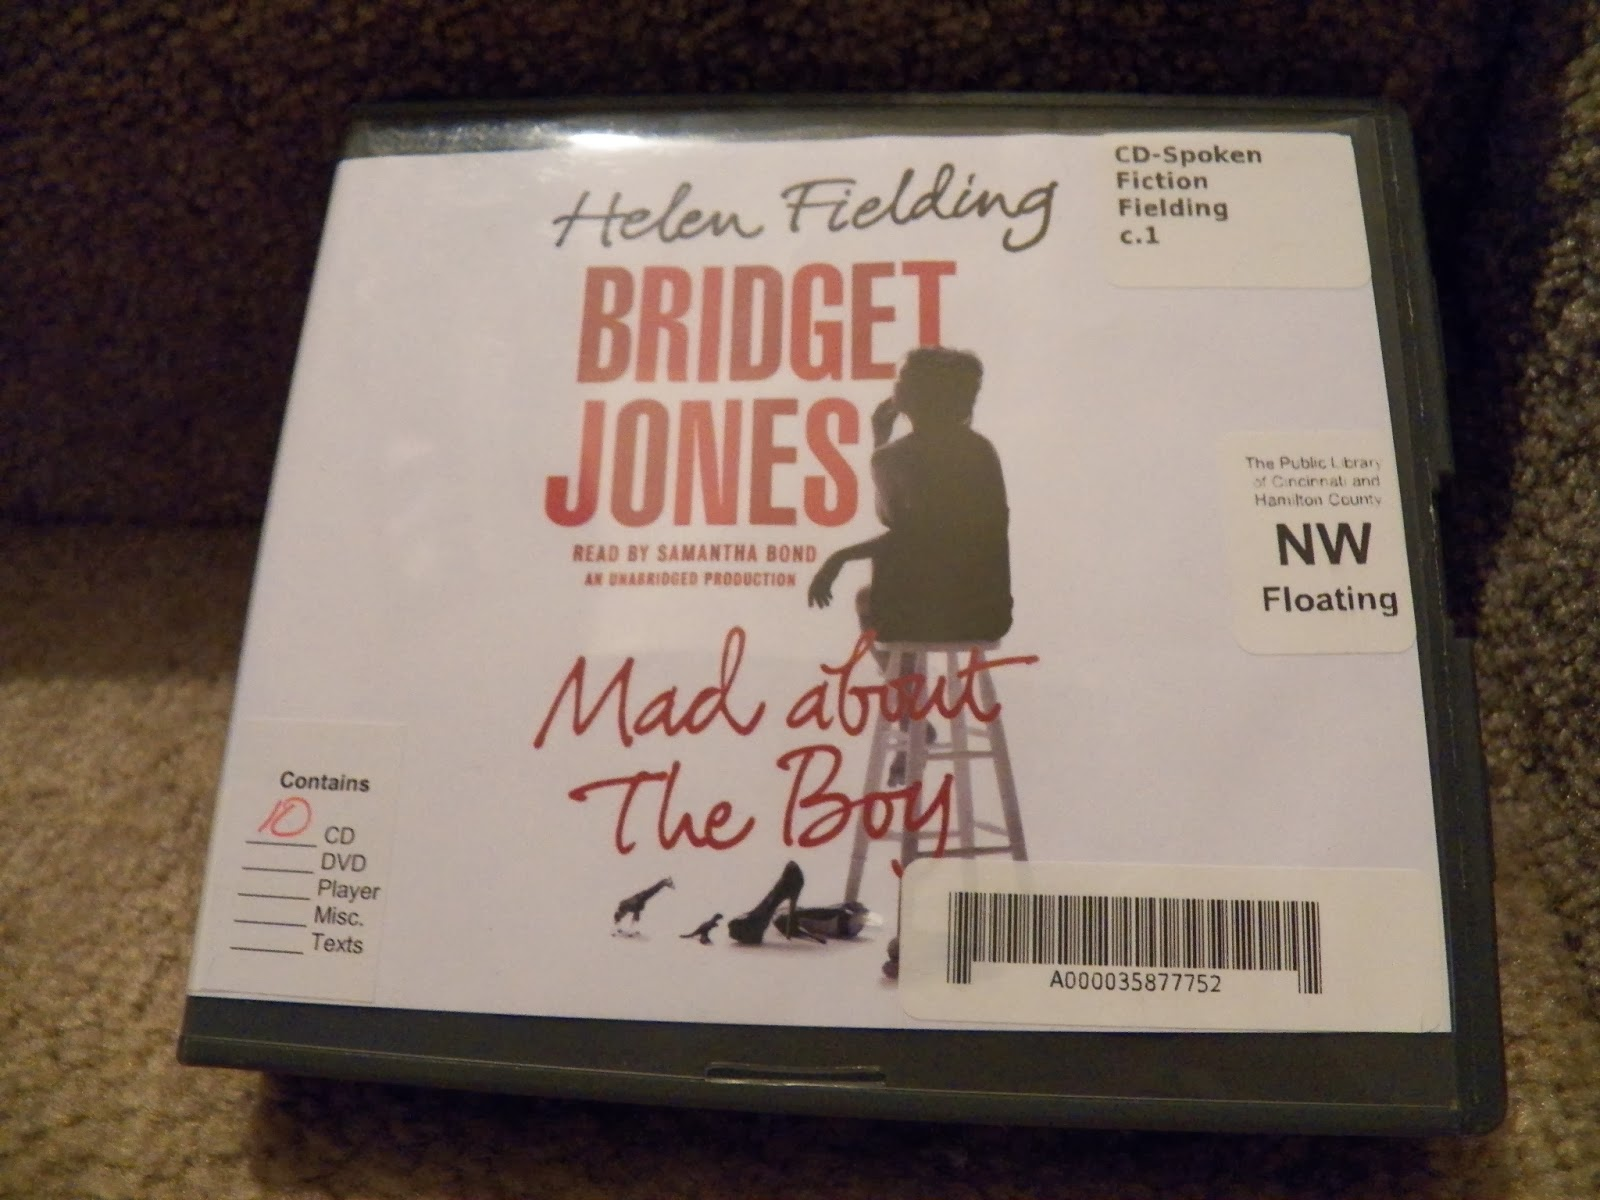 http://www.amazon.com/Bridget-Jones-Mad-About-Boy/dp/0385350864